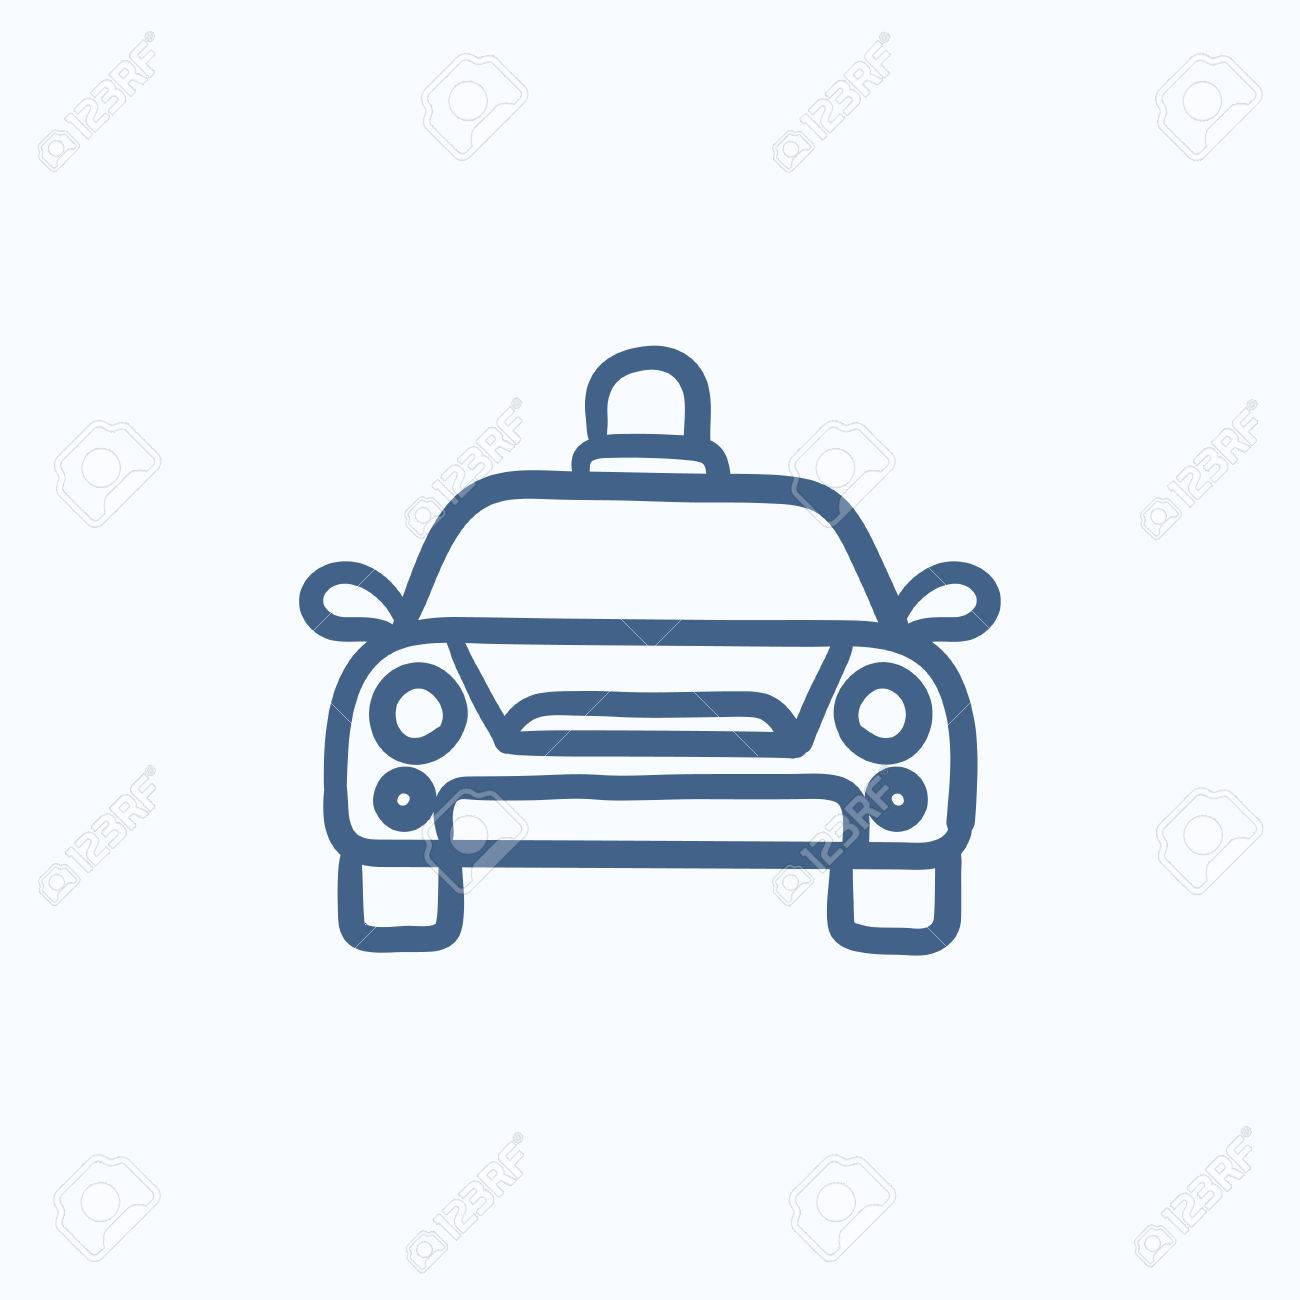 Police Car Website >> Police Car Vector Sketch Icon Isolated On Background Hand Drawn